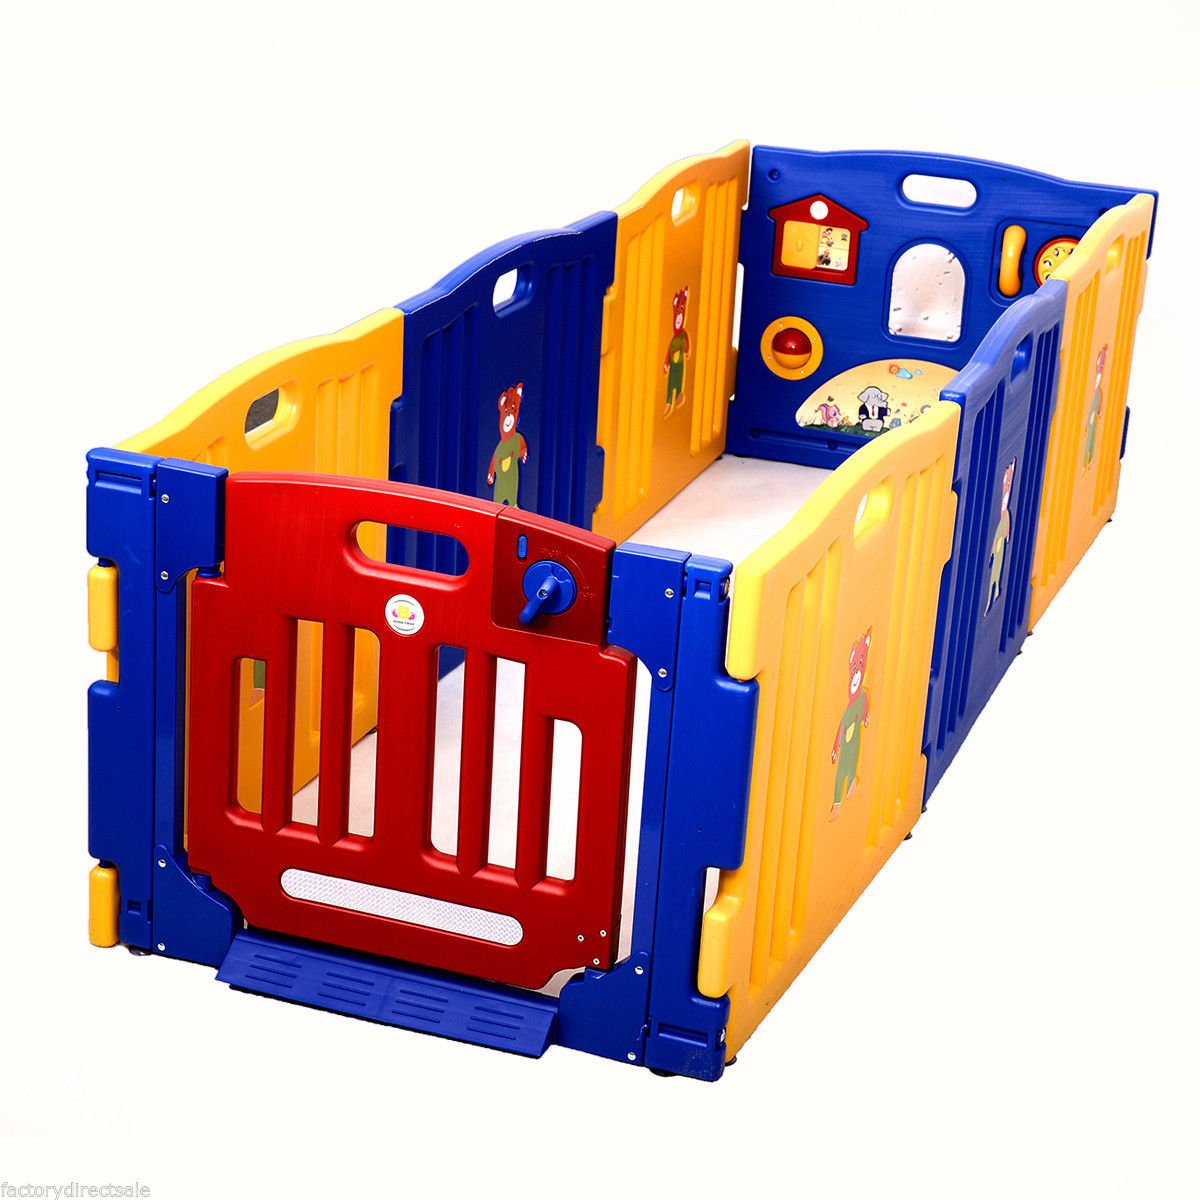 amazoncom  costzon baby play pen kids safety playpen activity  - amazoncom  costzon baby play pen kids safety playpen activity center withfloor foam mat  baby